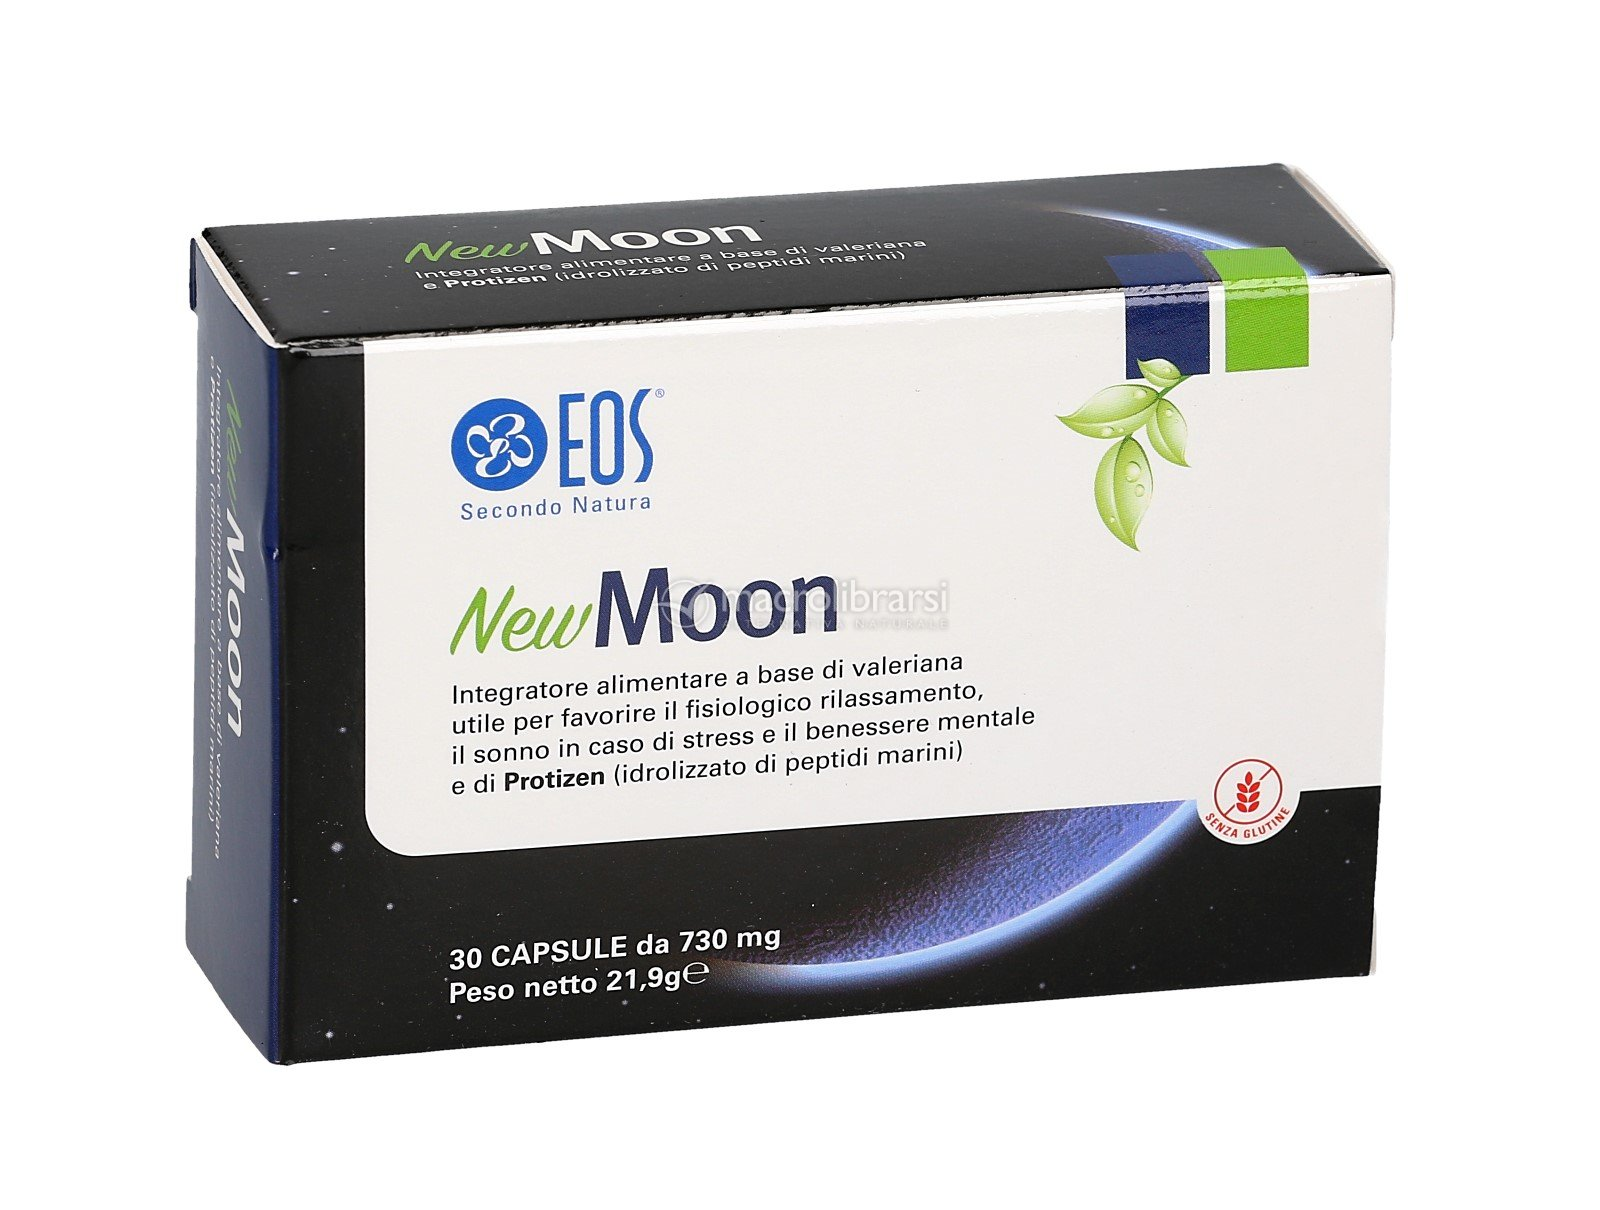 New moon integratore di valeriana e protizen eos secondo natura